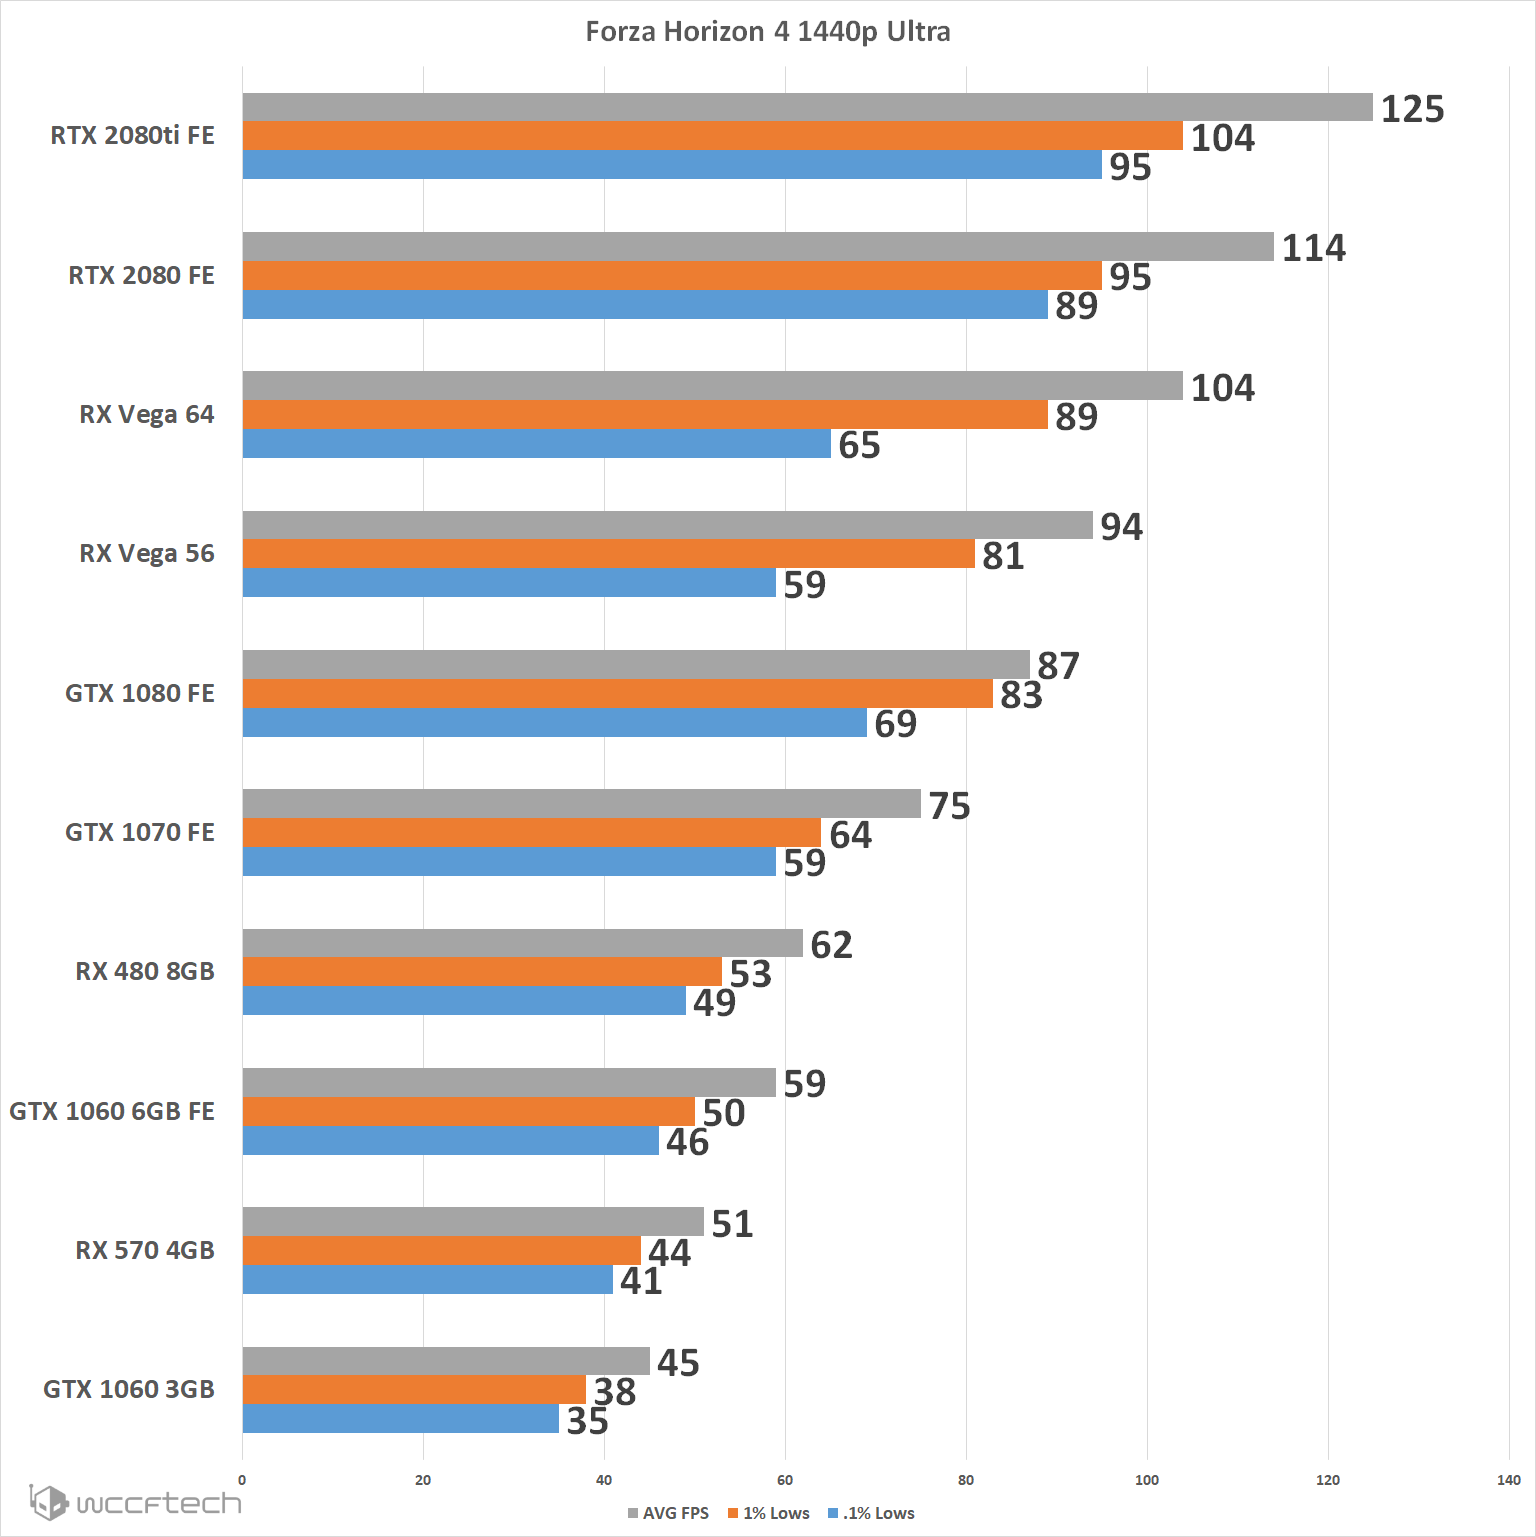 FH4 1440p - Forza Horizon 4 PC Graphics Card Performance Comparison And Core Scaling